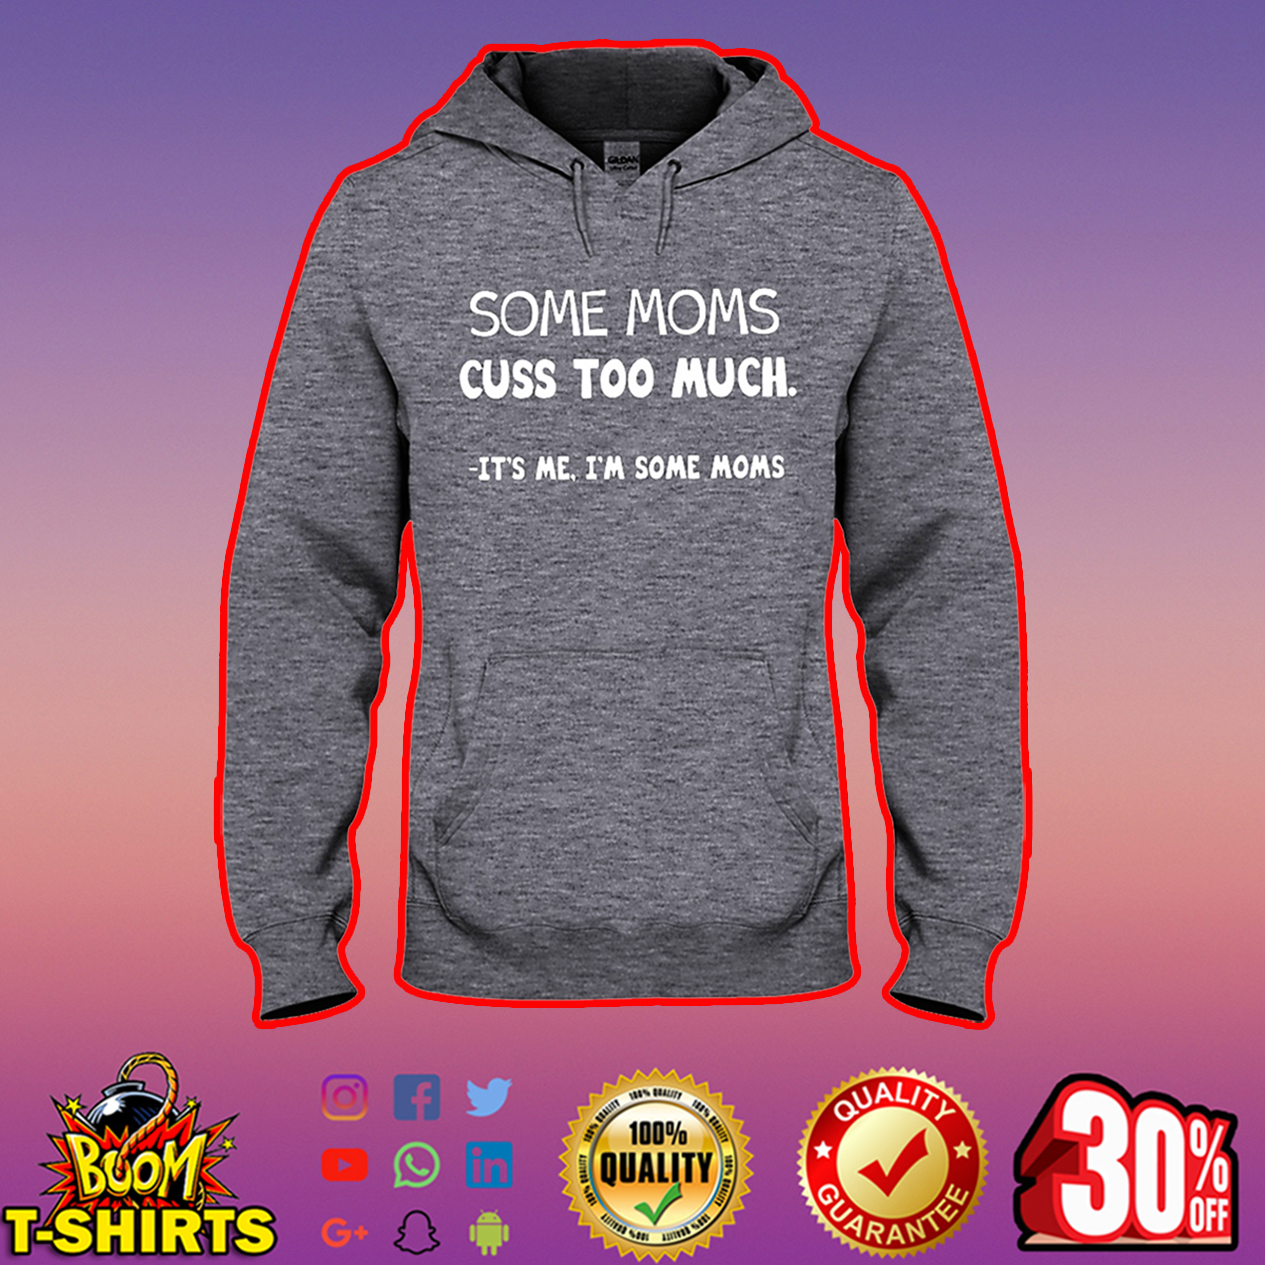 Some moms cuss too much it's me I'm some moms hooded sweatshirt